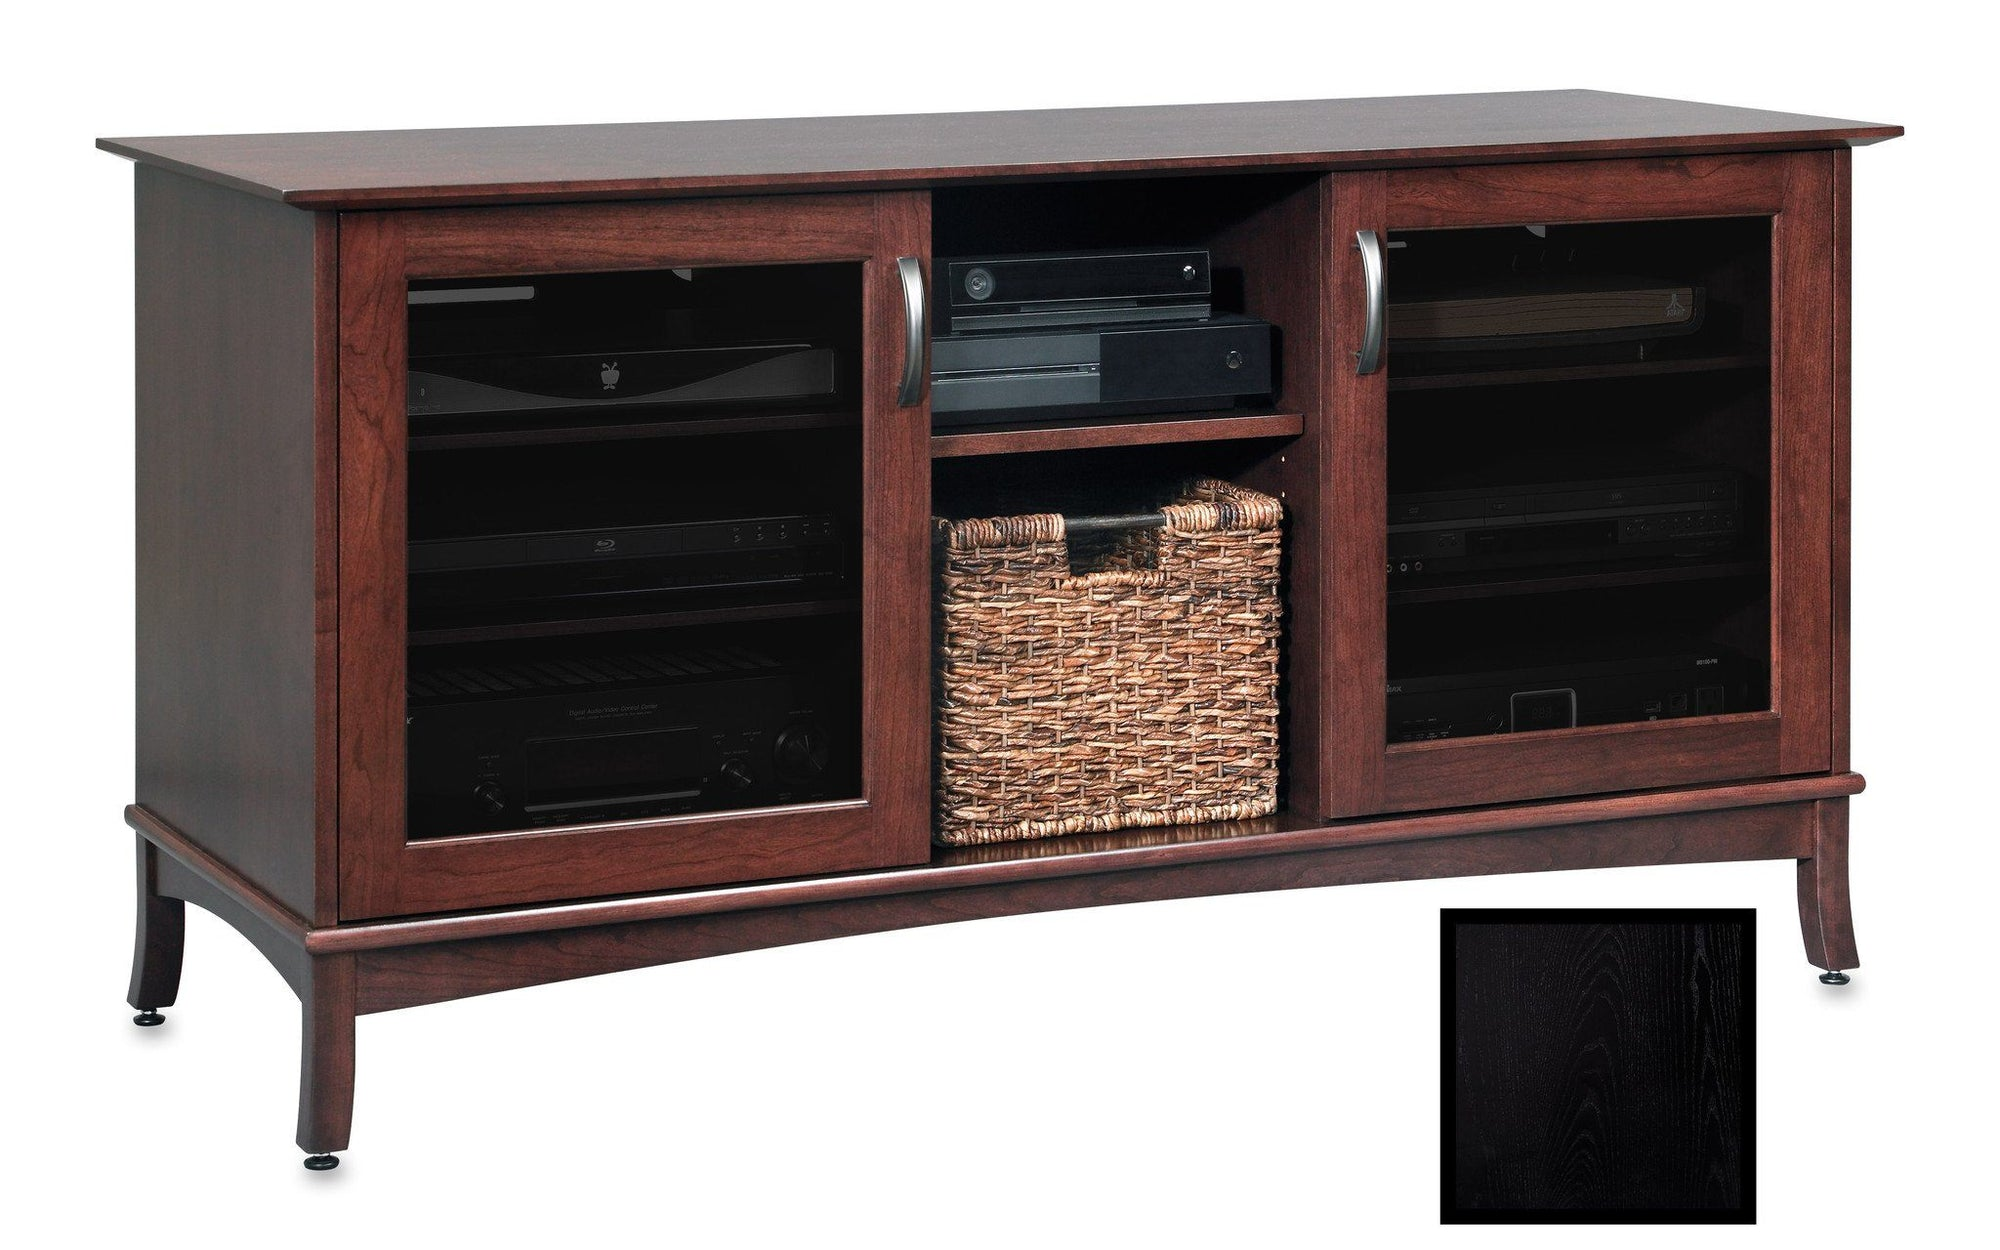 Solid Wood Media Console - Horizon Ex 60 Inch Black On